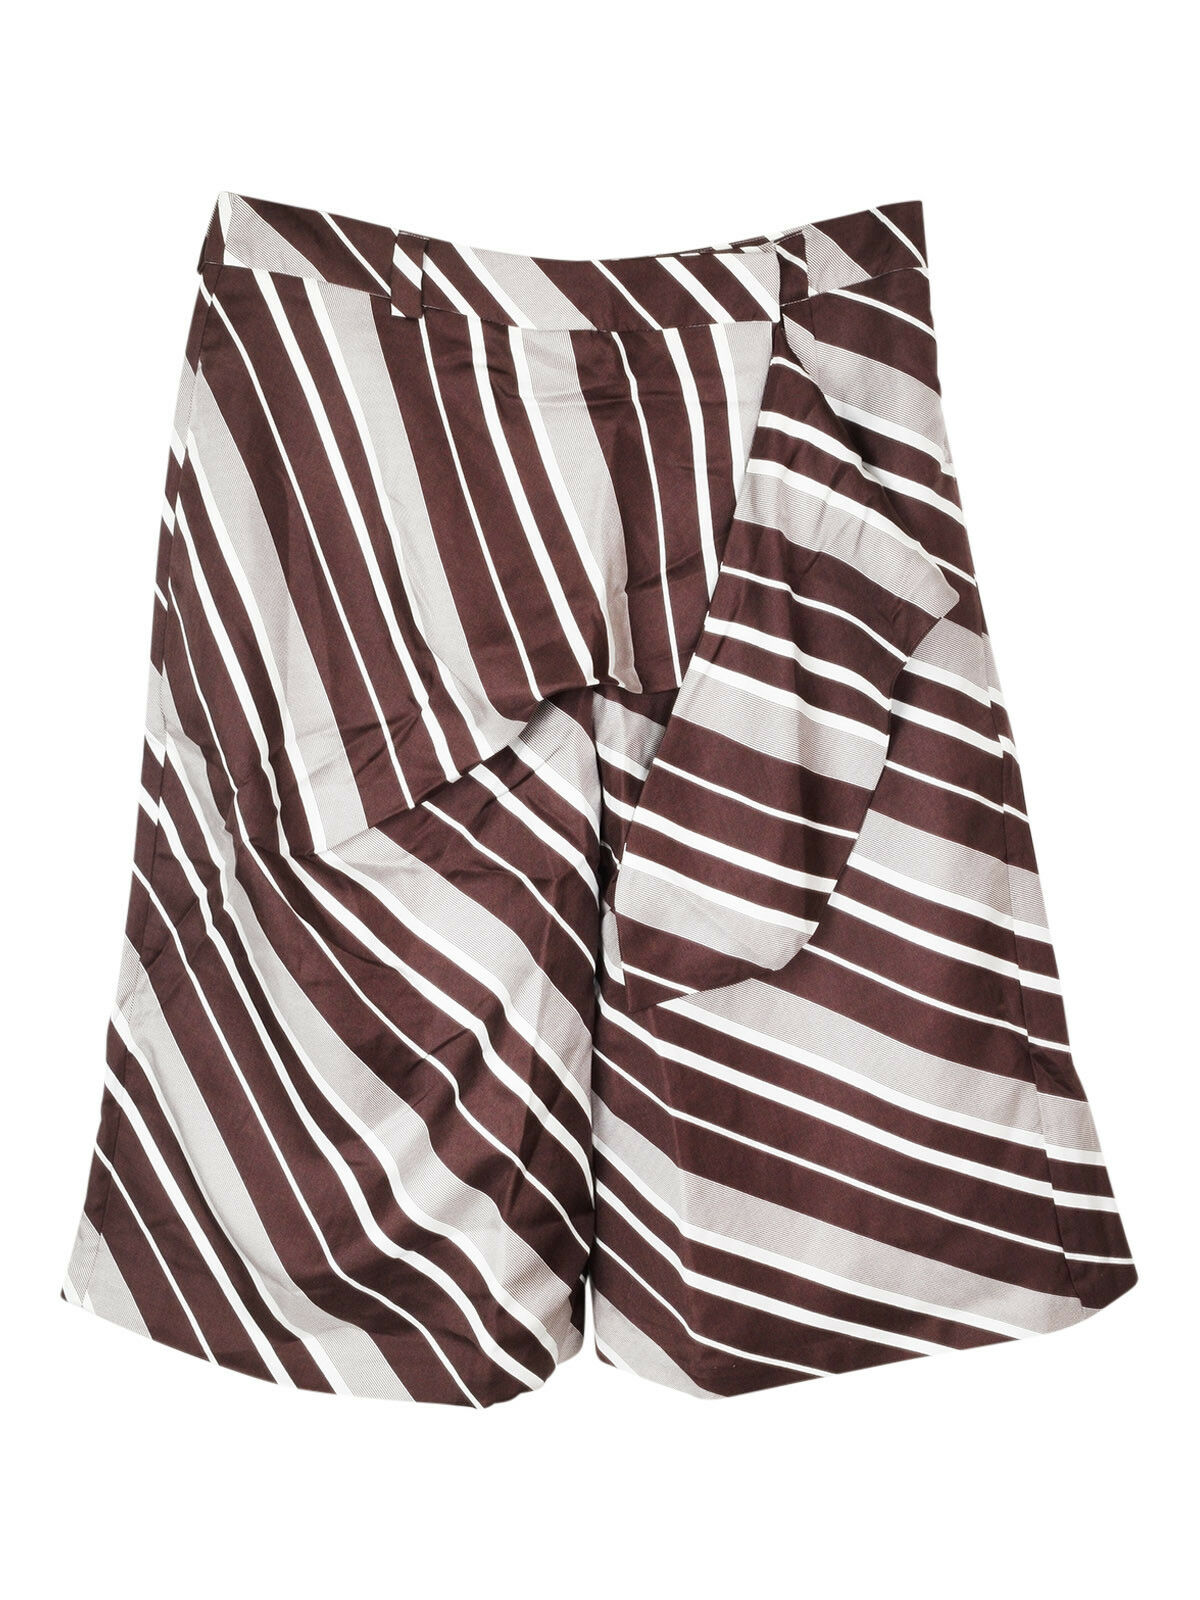 NEW J.W. Anderson silk knot culottes shorts